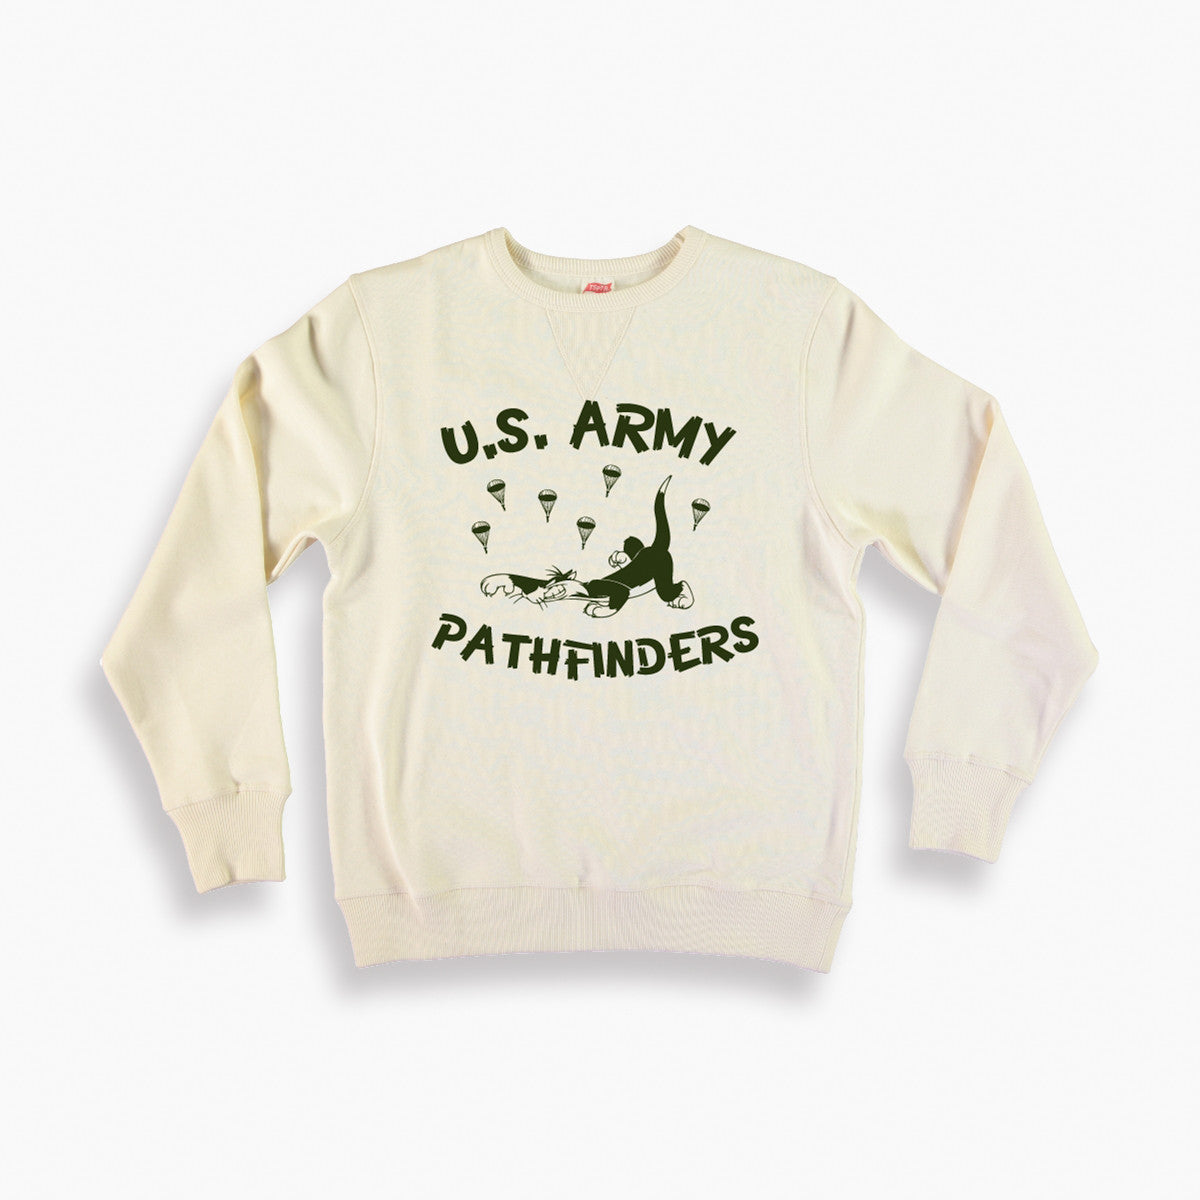 US Army Pathfinders Sweatshirt